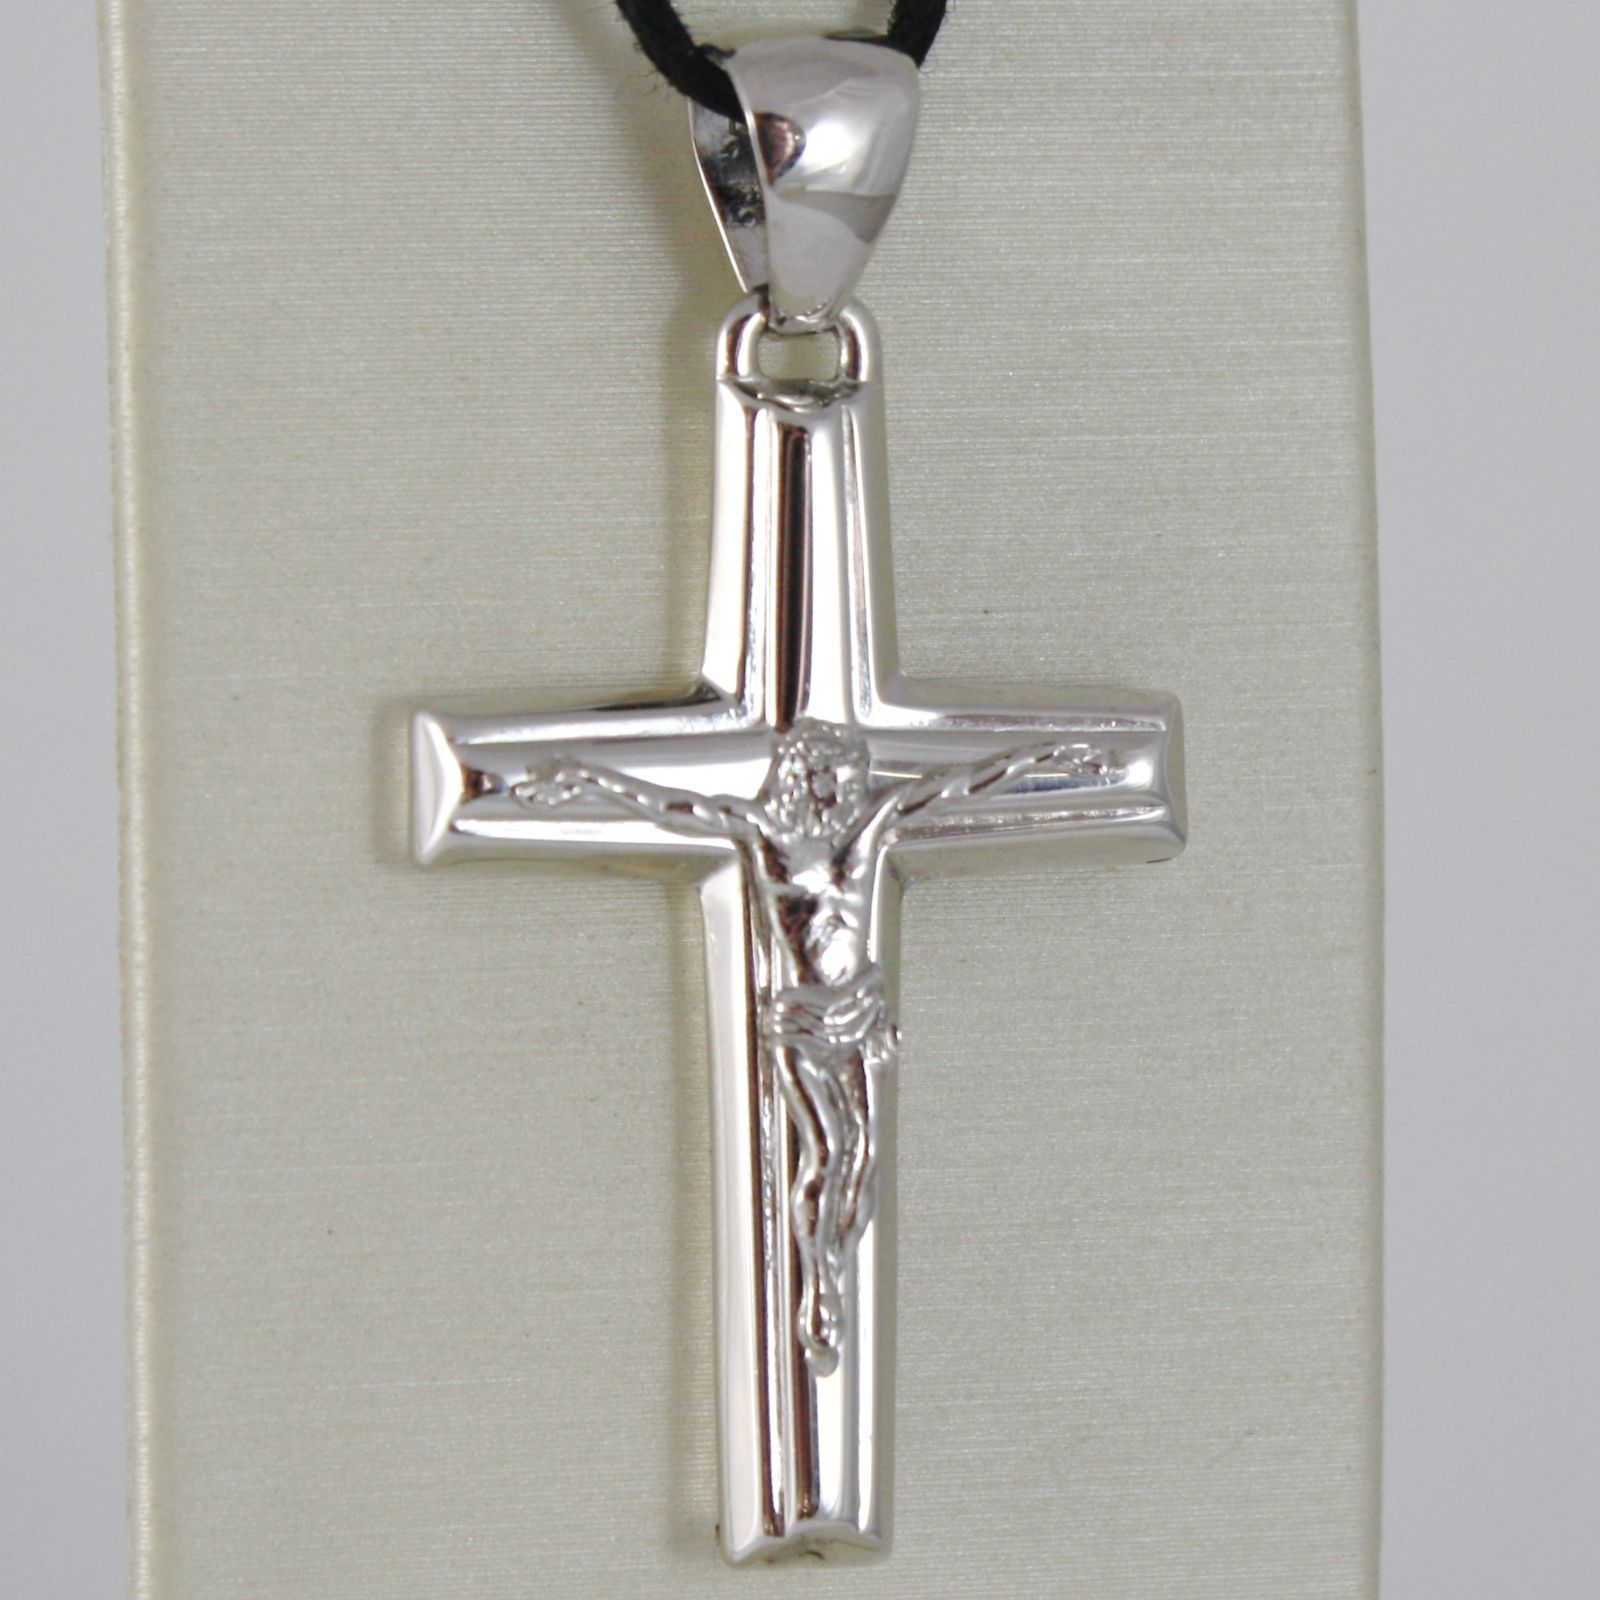 18K WHITE GOLD CROSS VERY SHINY WITH JESUS CHRIST MADE IN ITALY 1.57 INCHES